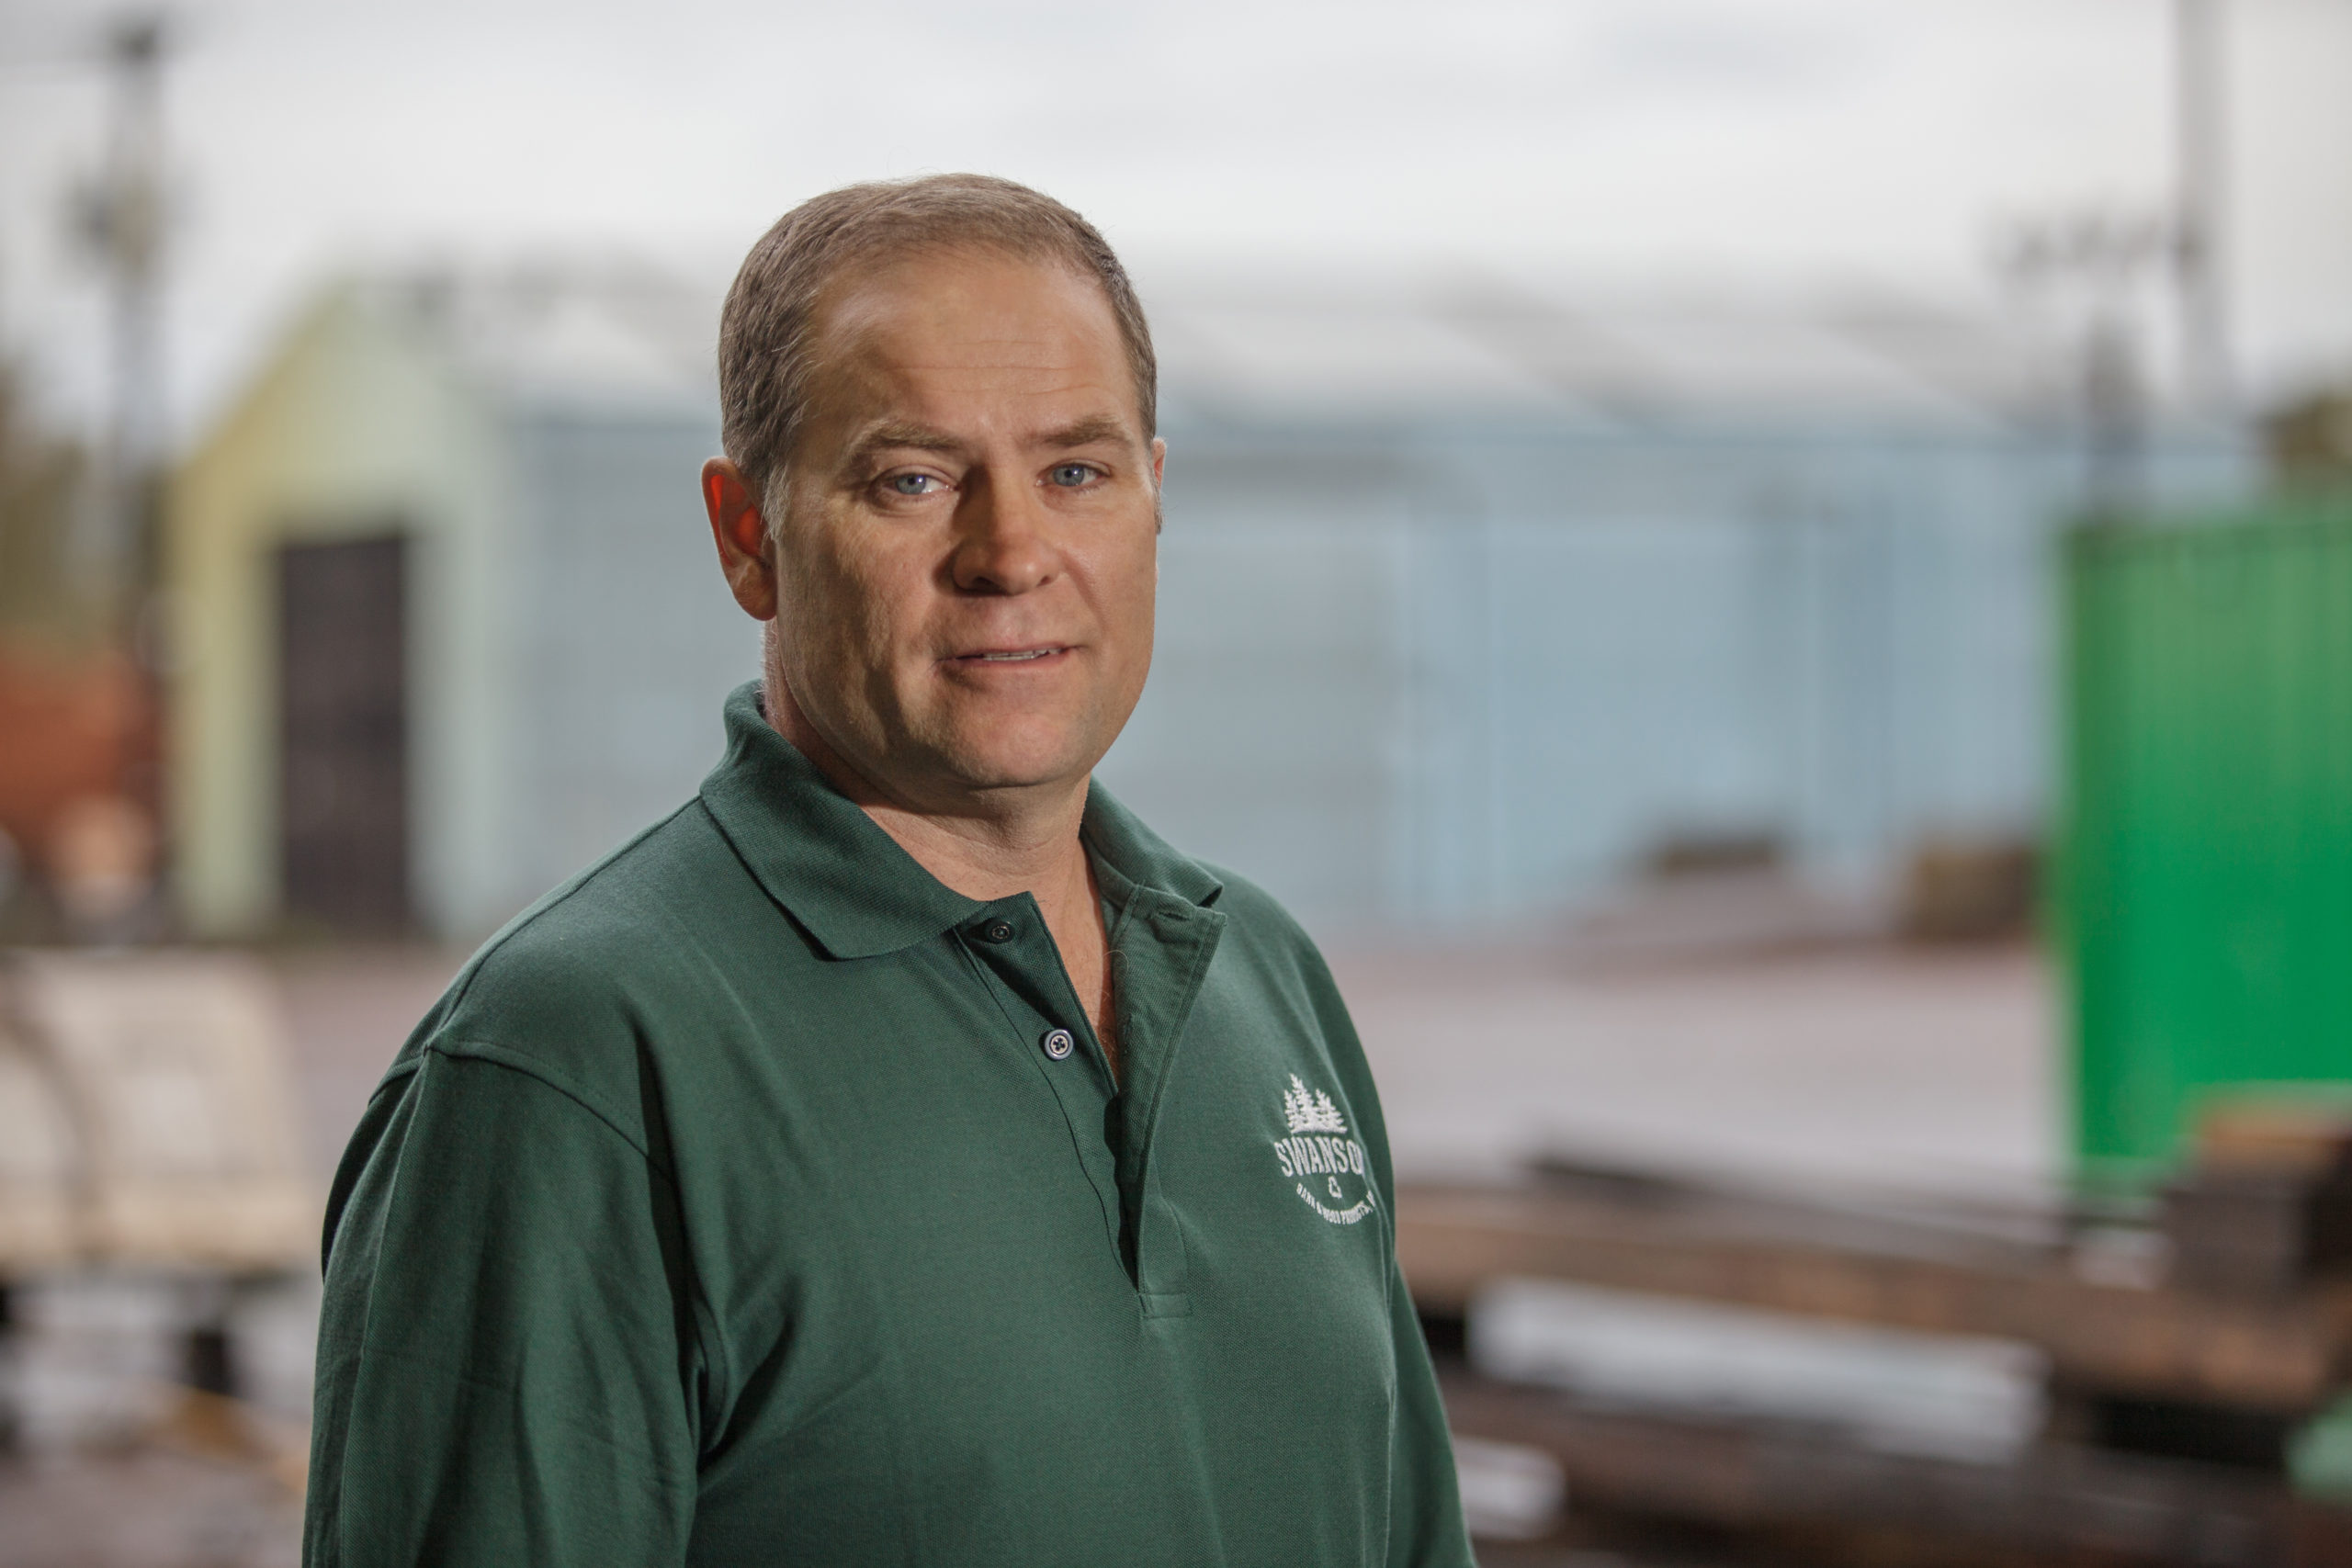 Doug Christophersen, Facilities Manager